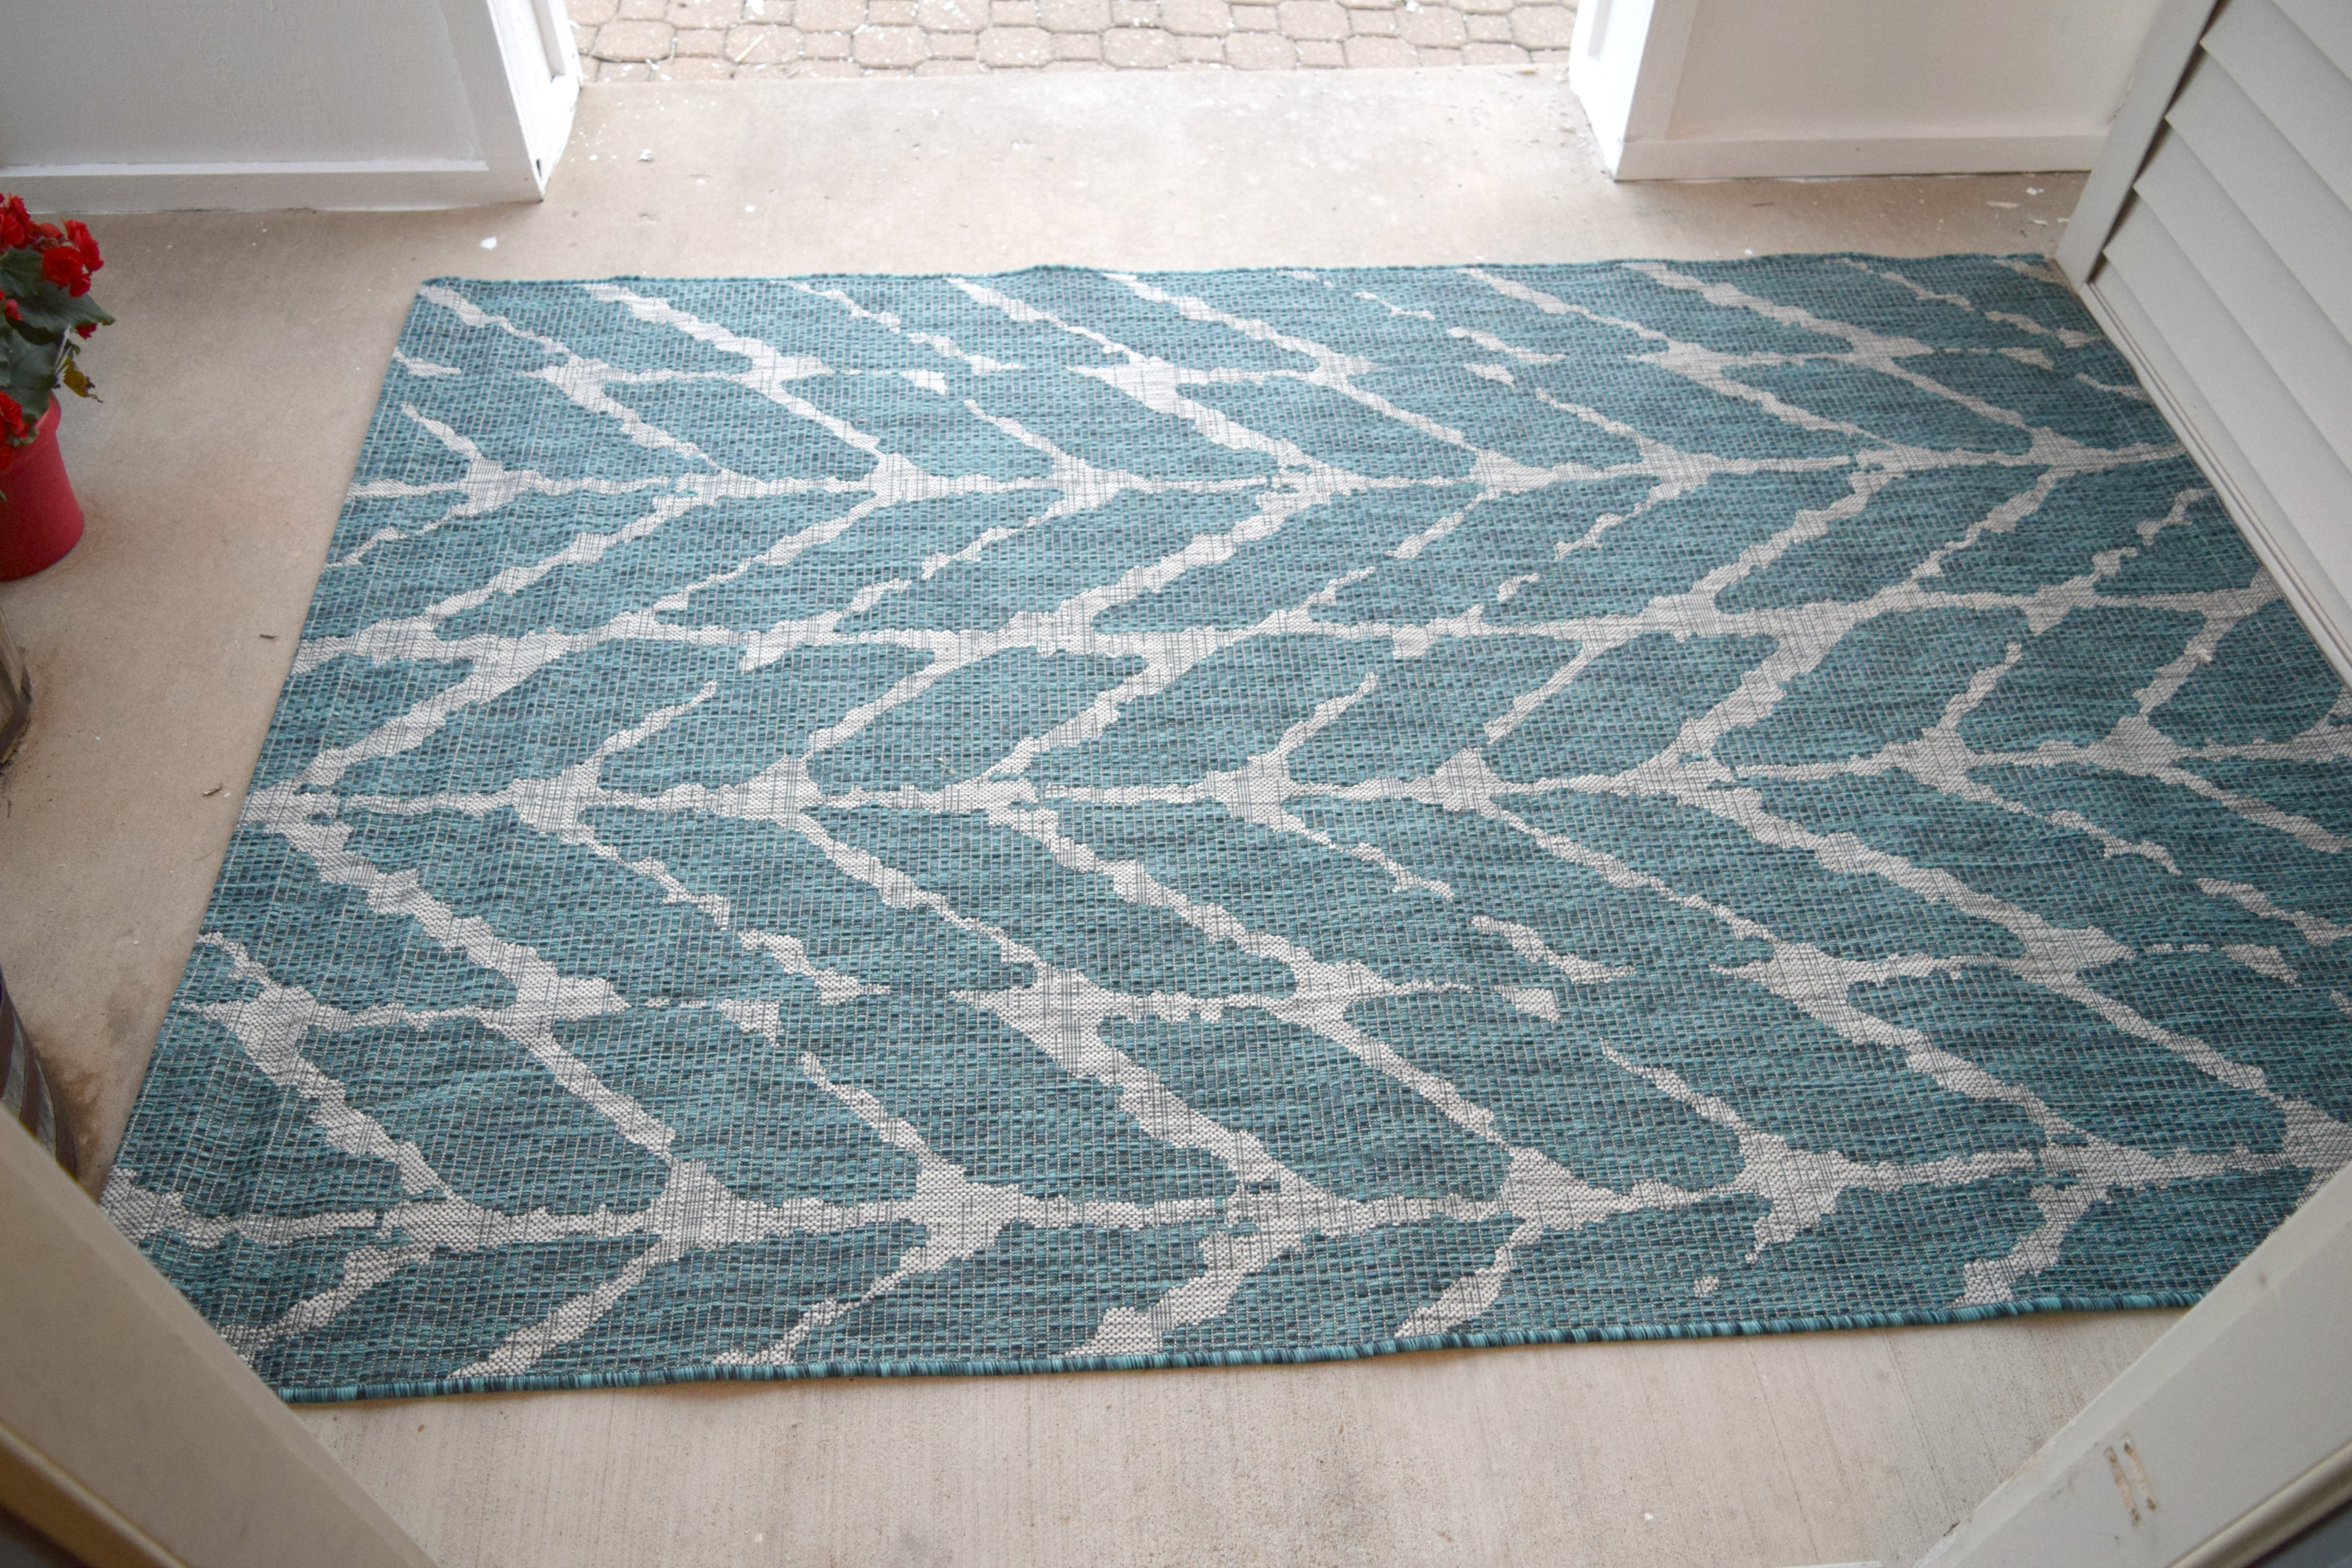 New rugs for the home, a small change makes a big difference • Our ...